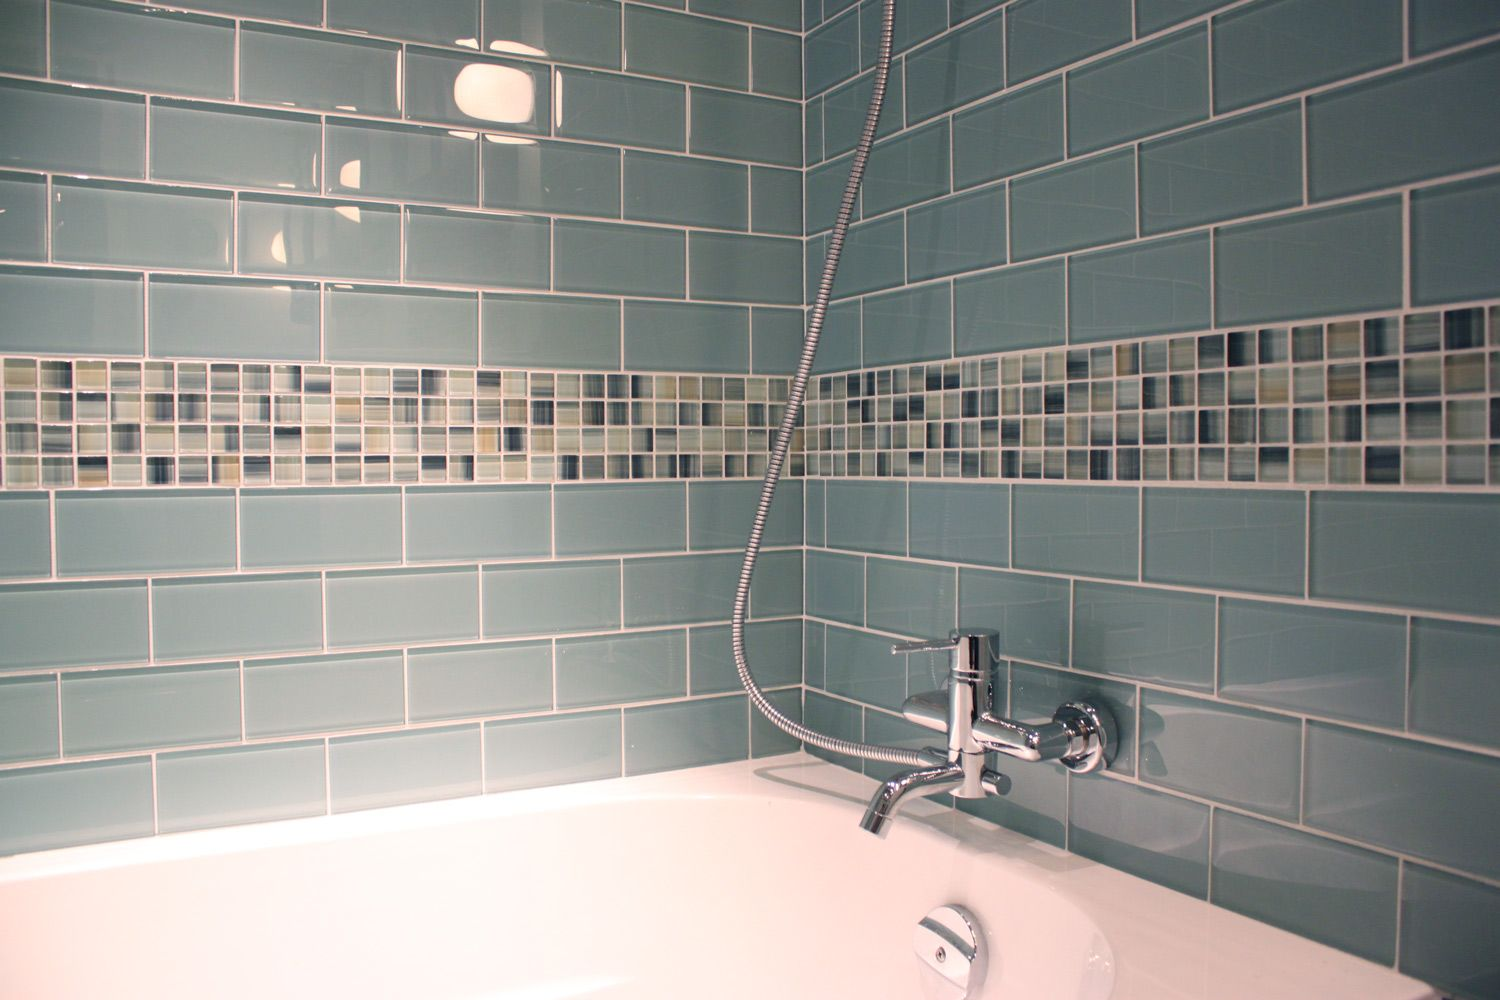 Seaside Blue 3x6 Glass Subway Tiles | Subway tiles, Tile tub ...